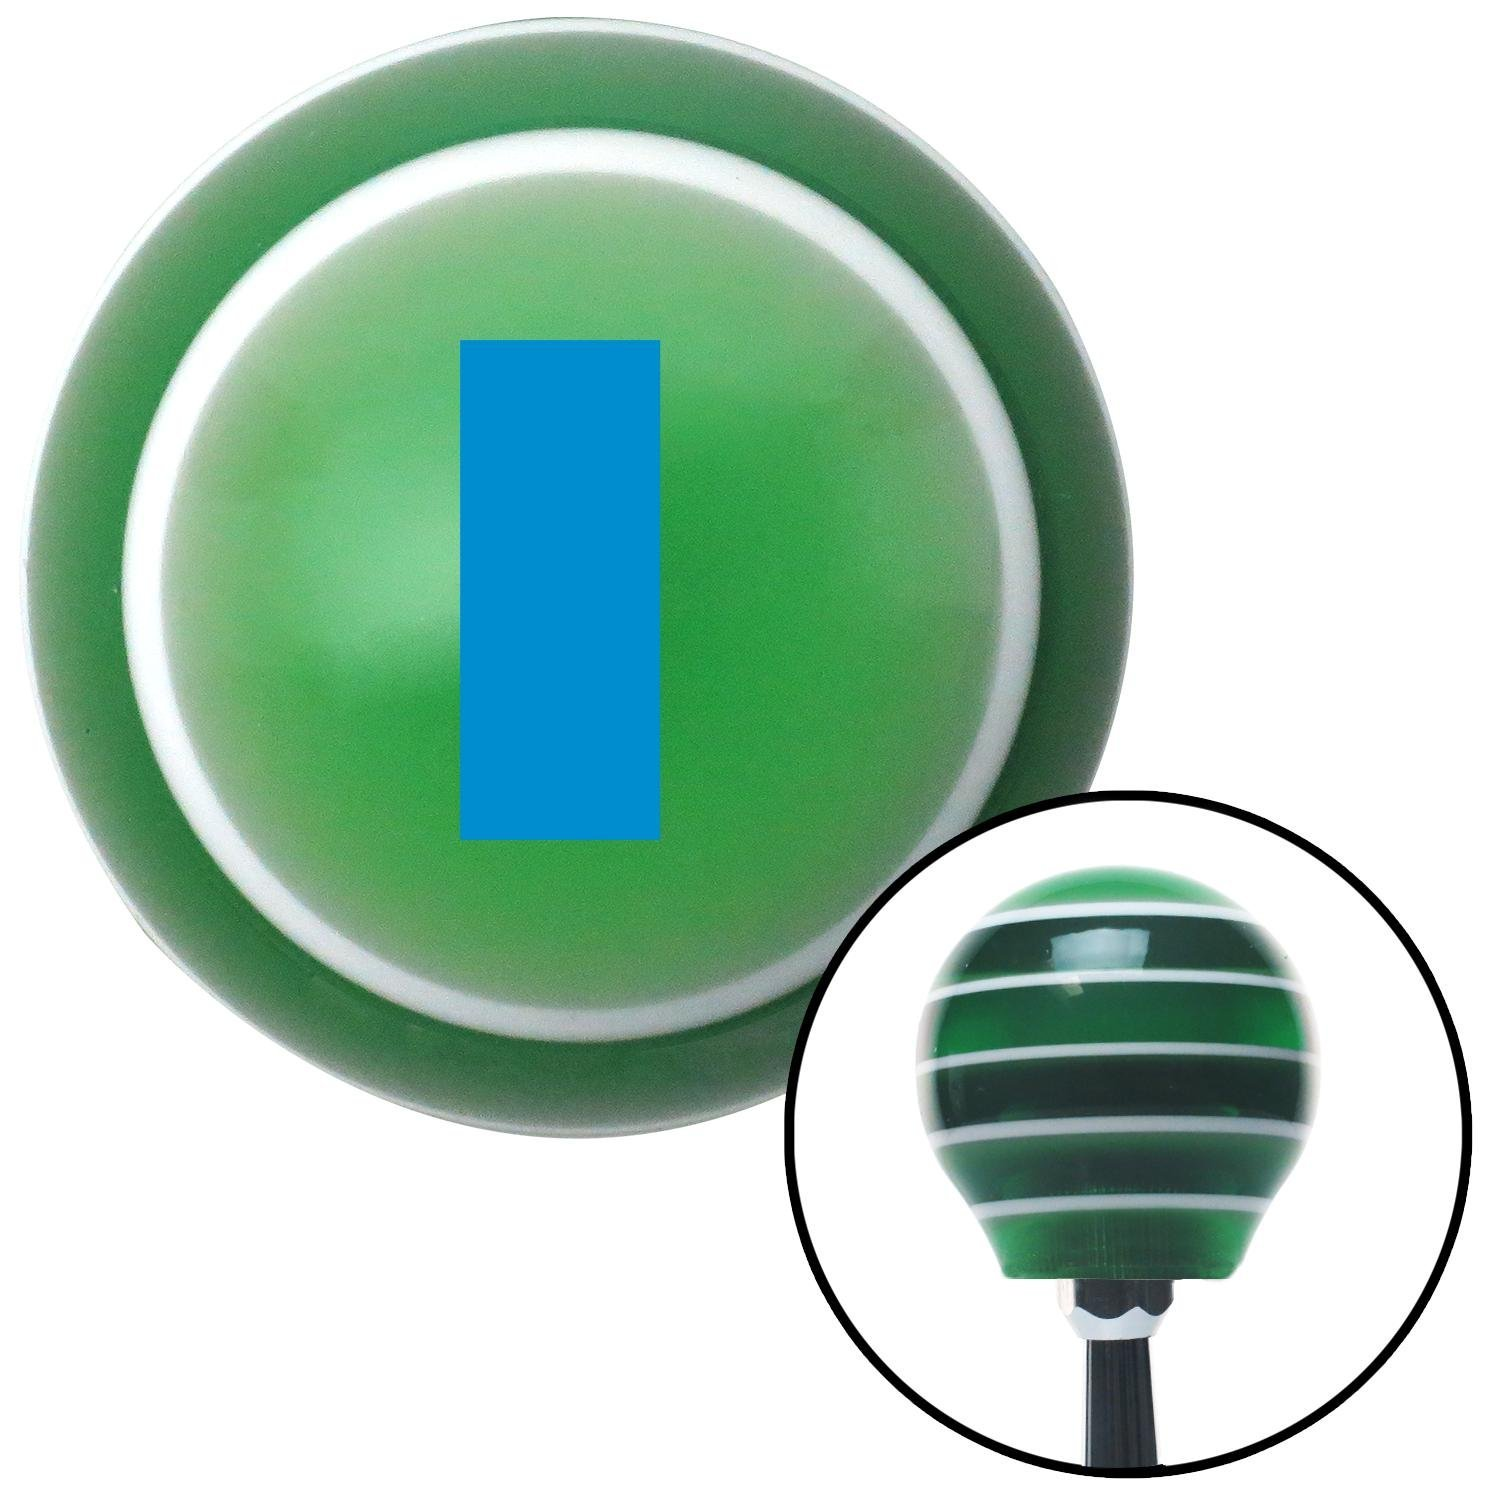 American Shifter 124706 Green Stripe Shift Knob with M16 x 1.5 Insert Blue First Lieutenant /& Second Lieutenant